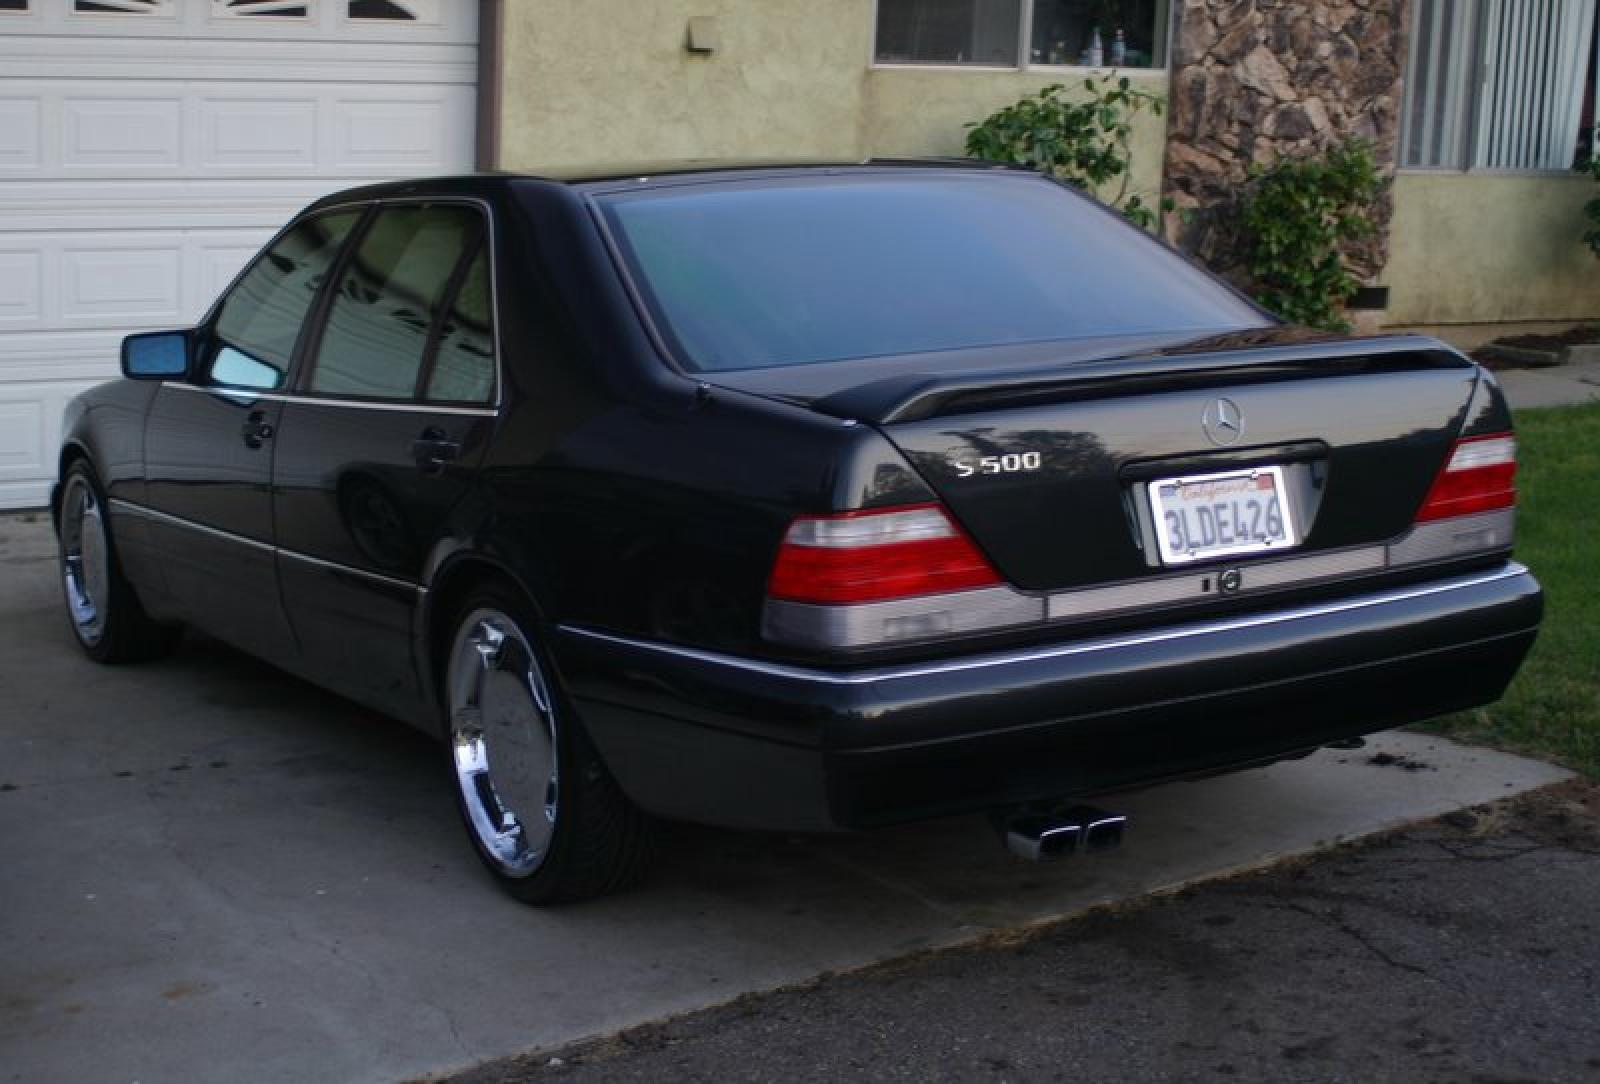 Ef B D A B Ea C A together with A A Ce C C E Ede as well Mercedes Benz S Class together with D Lowering W Wp in addition F E Gta. on 95 mercedes s500